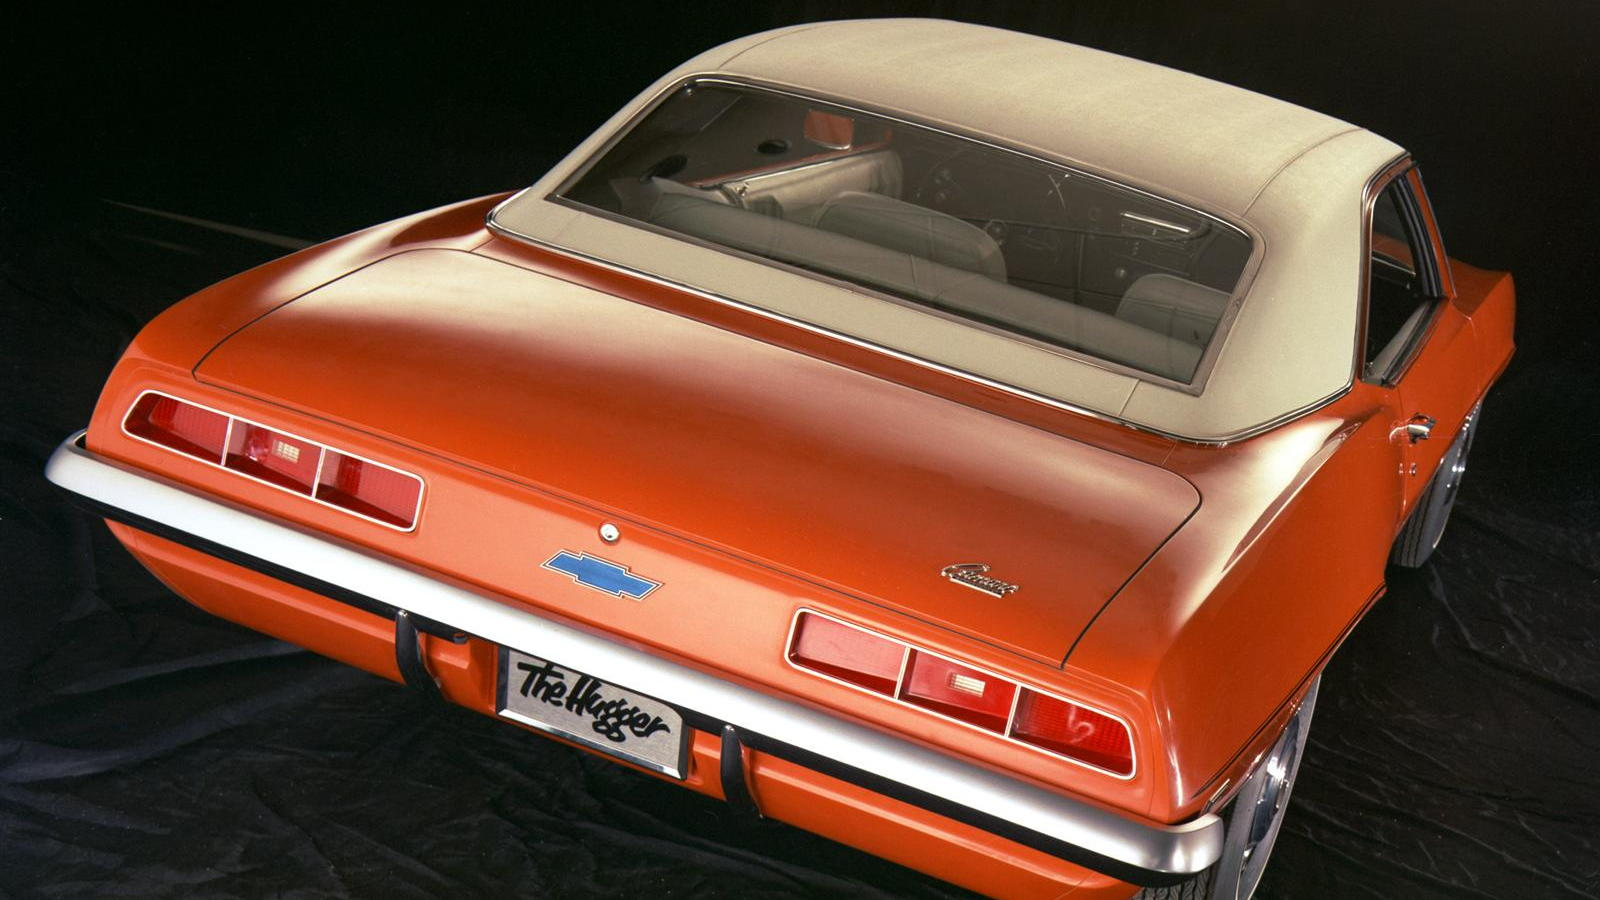 1969 Chevrolet Camaro in Hugger Orange